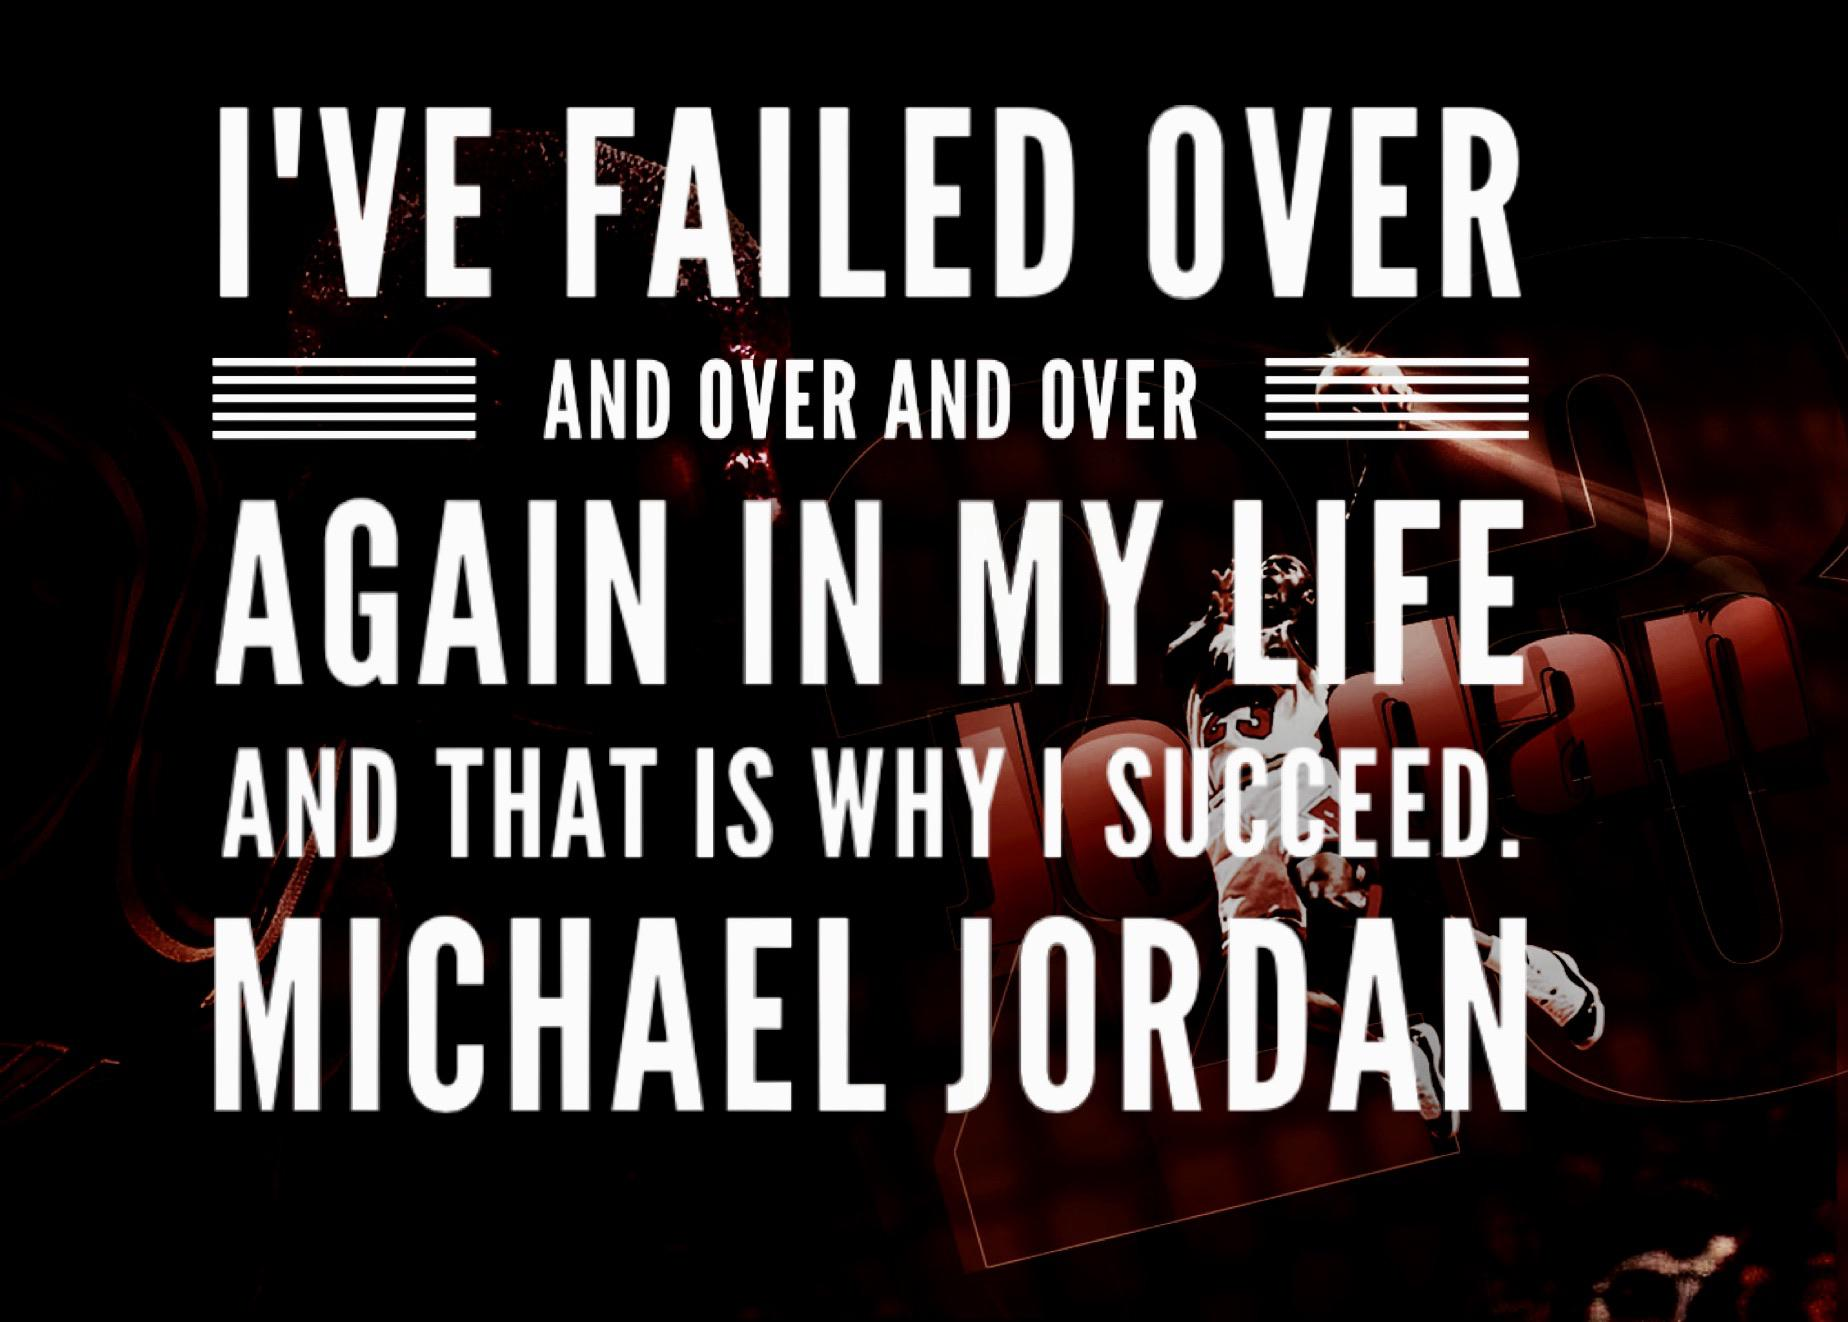 """I've failed over and over and over again in my life and that is why I succeed"". – Michael Jordan [1848×1322]"